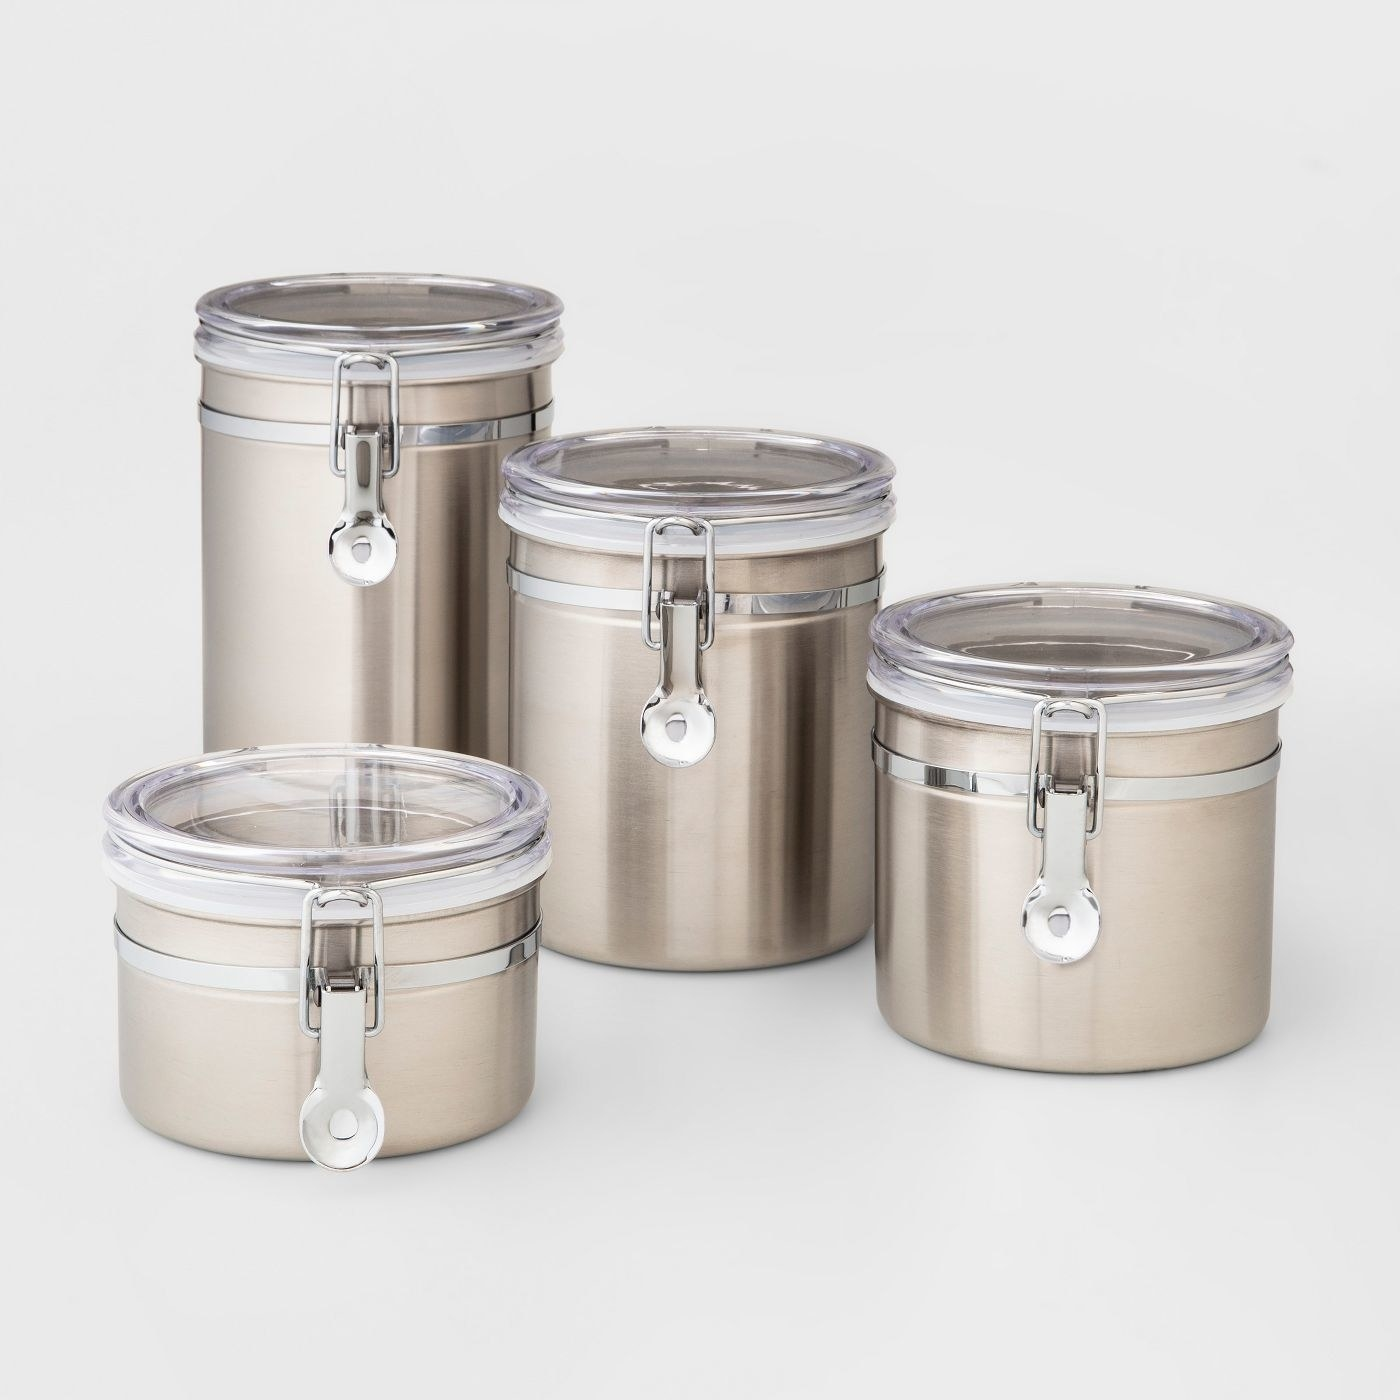 Set of four stainless steel canisters with plastic tops in various sizes